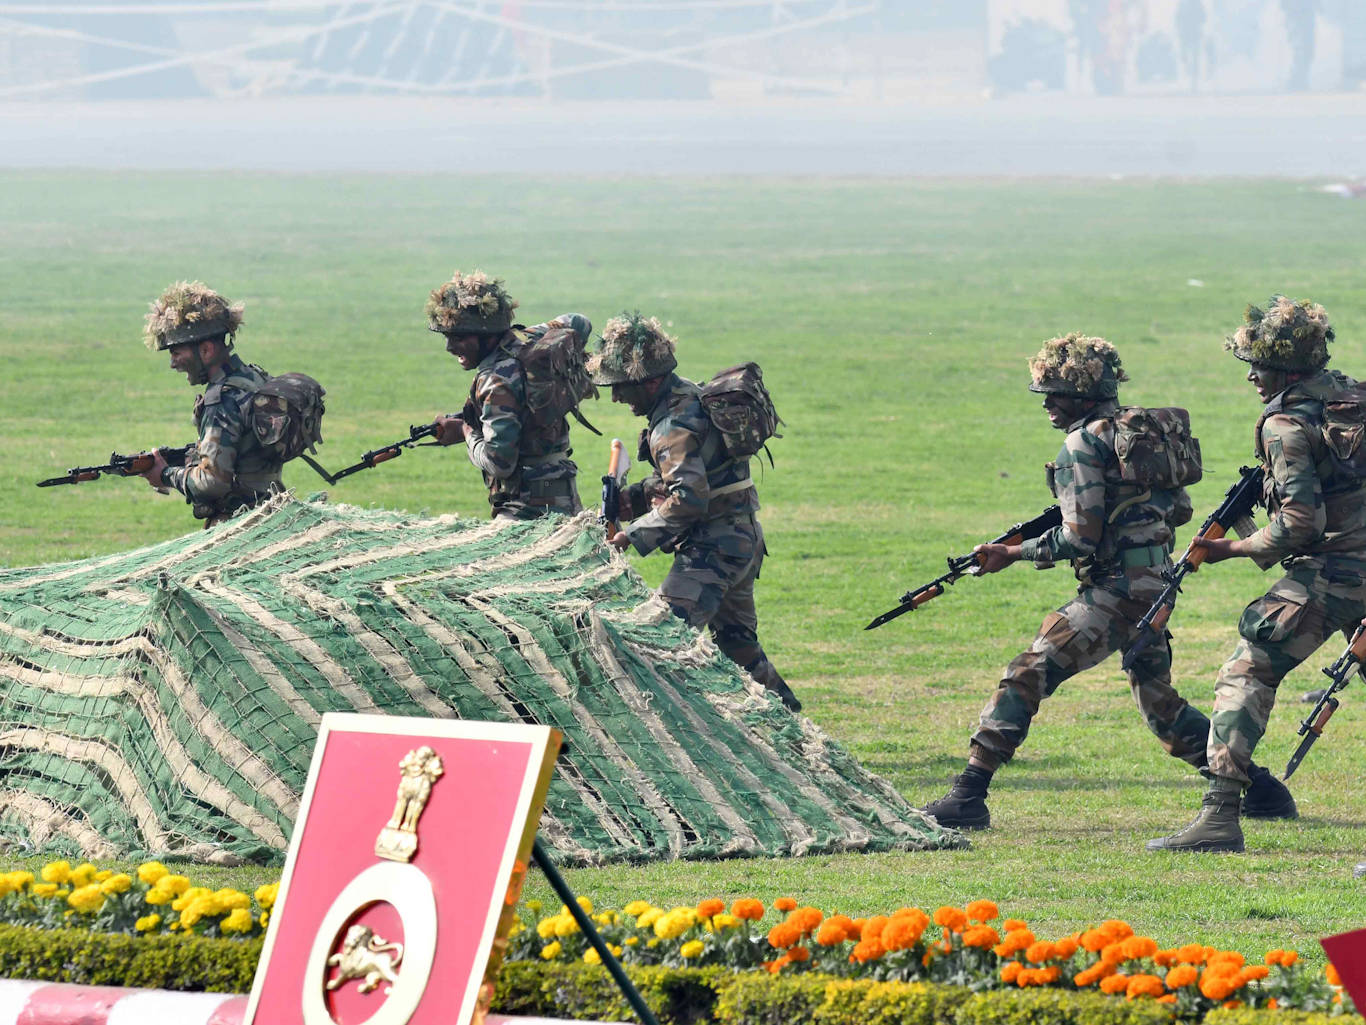 Asia's security environment is changing and India's armed forces lag far behind China